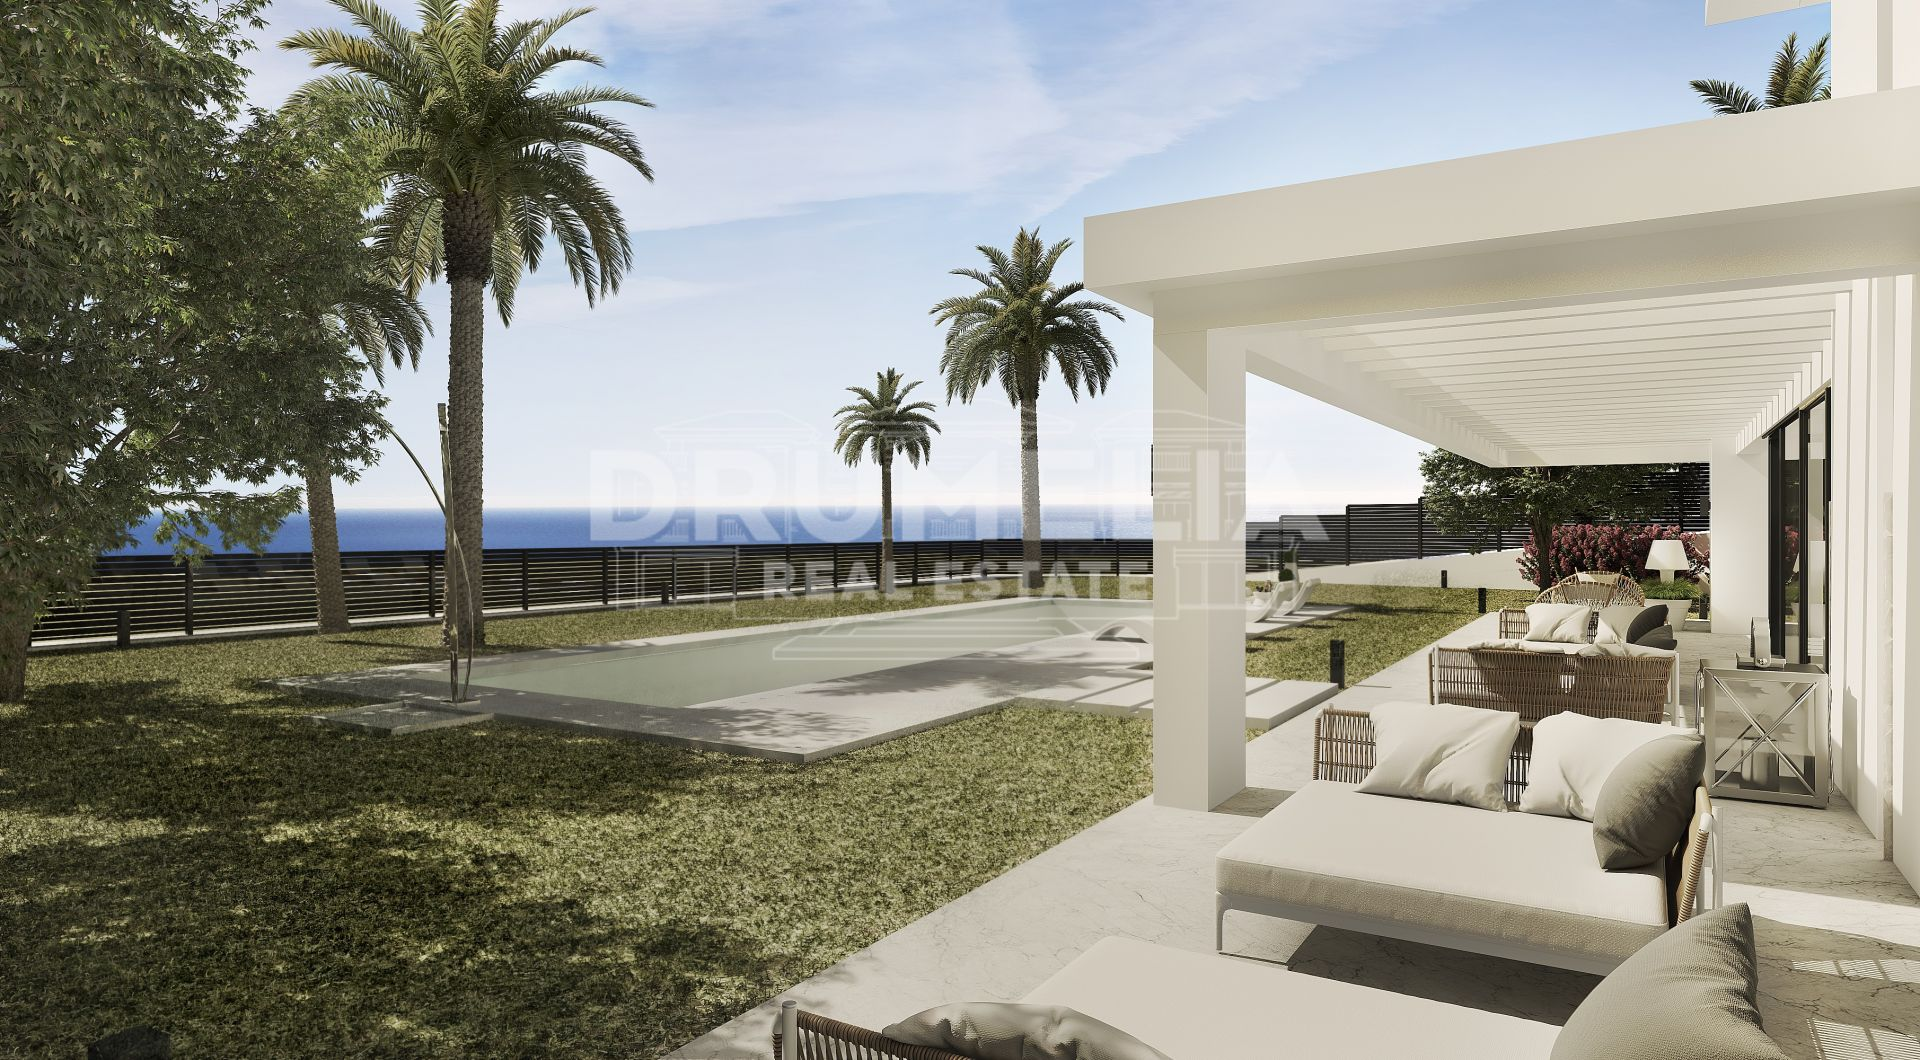 Benahavis, Brand-New Spectacular Contemporary Luxury Villa, Los Flamingos Resort, Benahavis